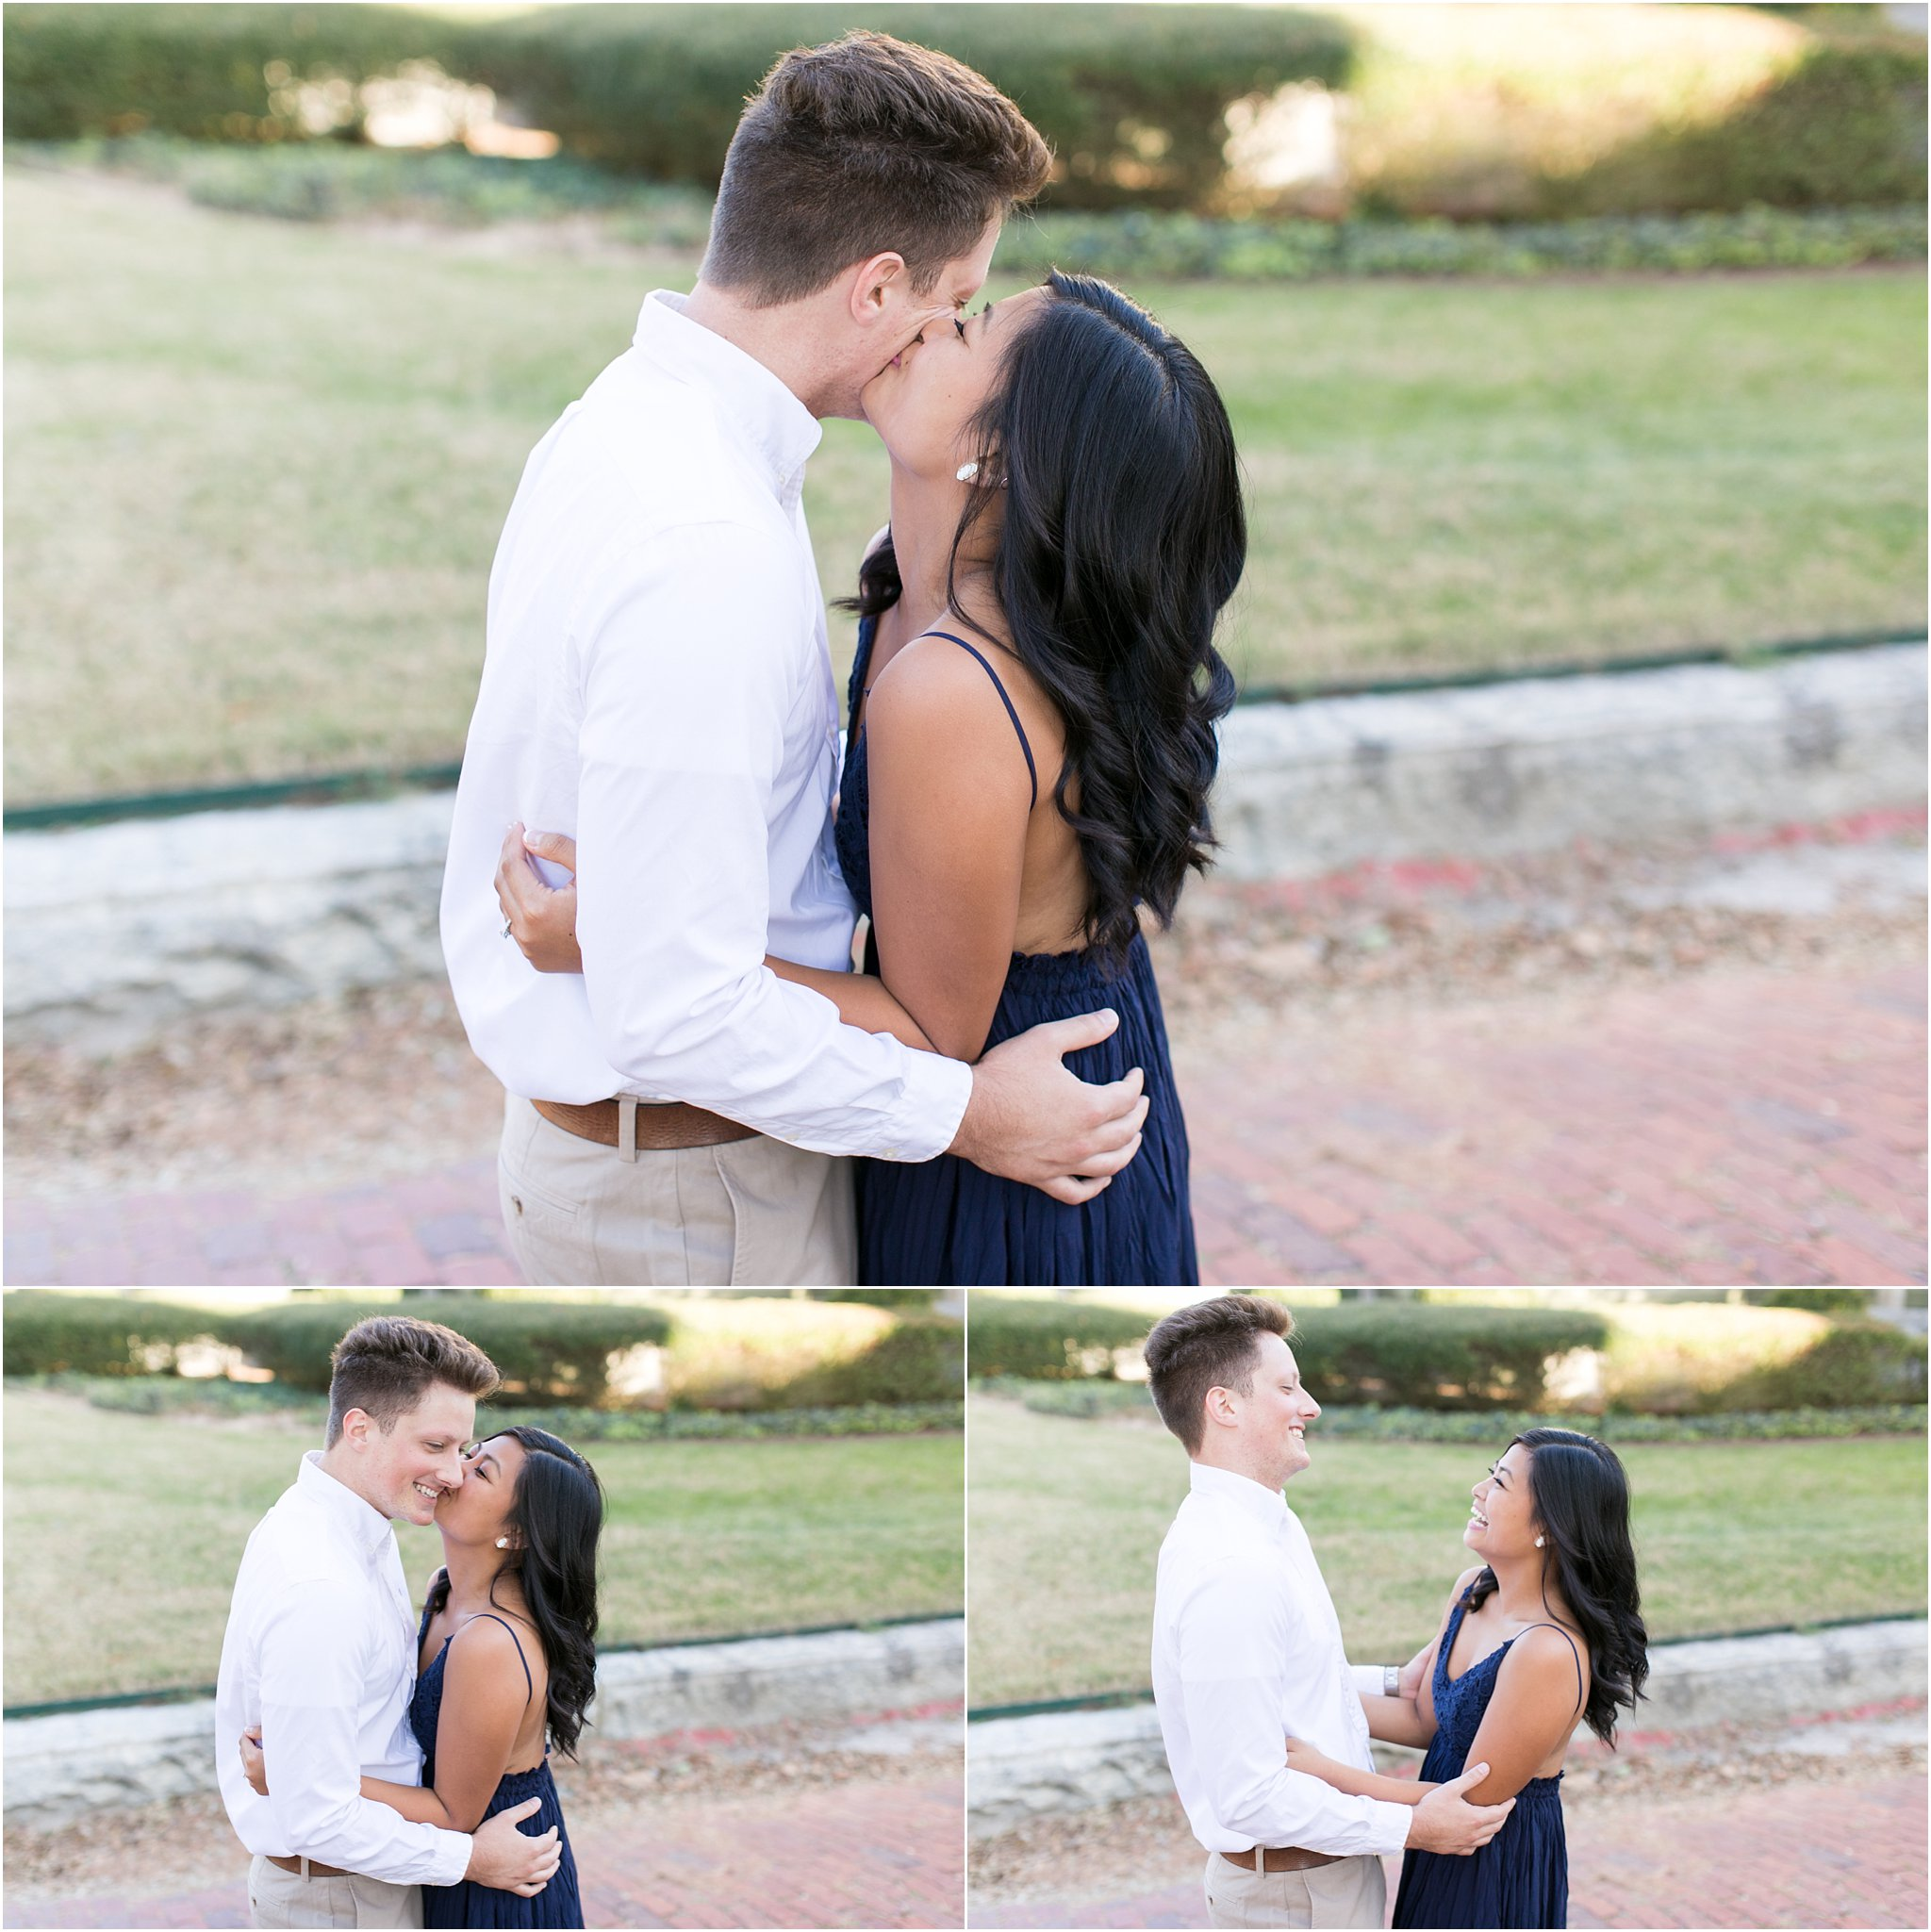 jessica_ryan_photography_virginia_smithfield_historical_downtown_engagement_portraits_candid_authentic_3704